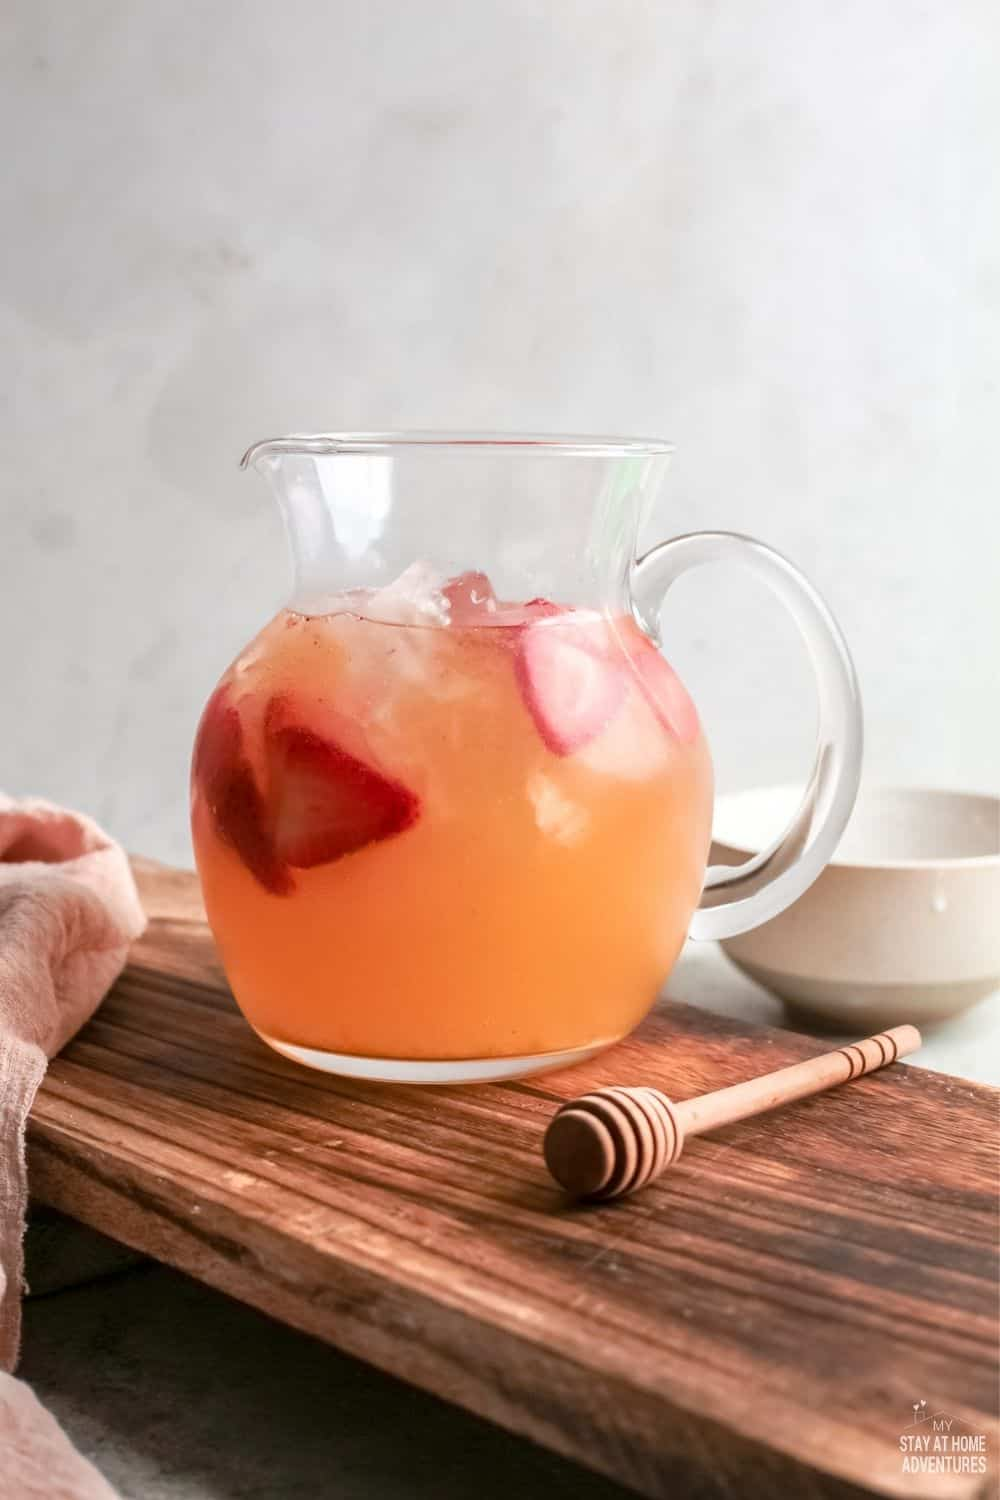 If you want to enjoy a refreshing drink this summer, then try strawberry lemonade. This sparkling beverage is perfect for your next barbecue or family get-together. Whip up a batch today! via @mystayathome